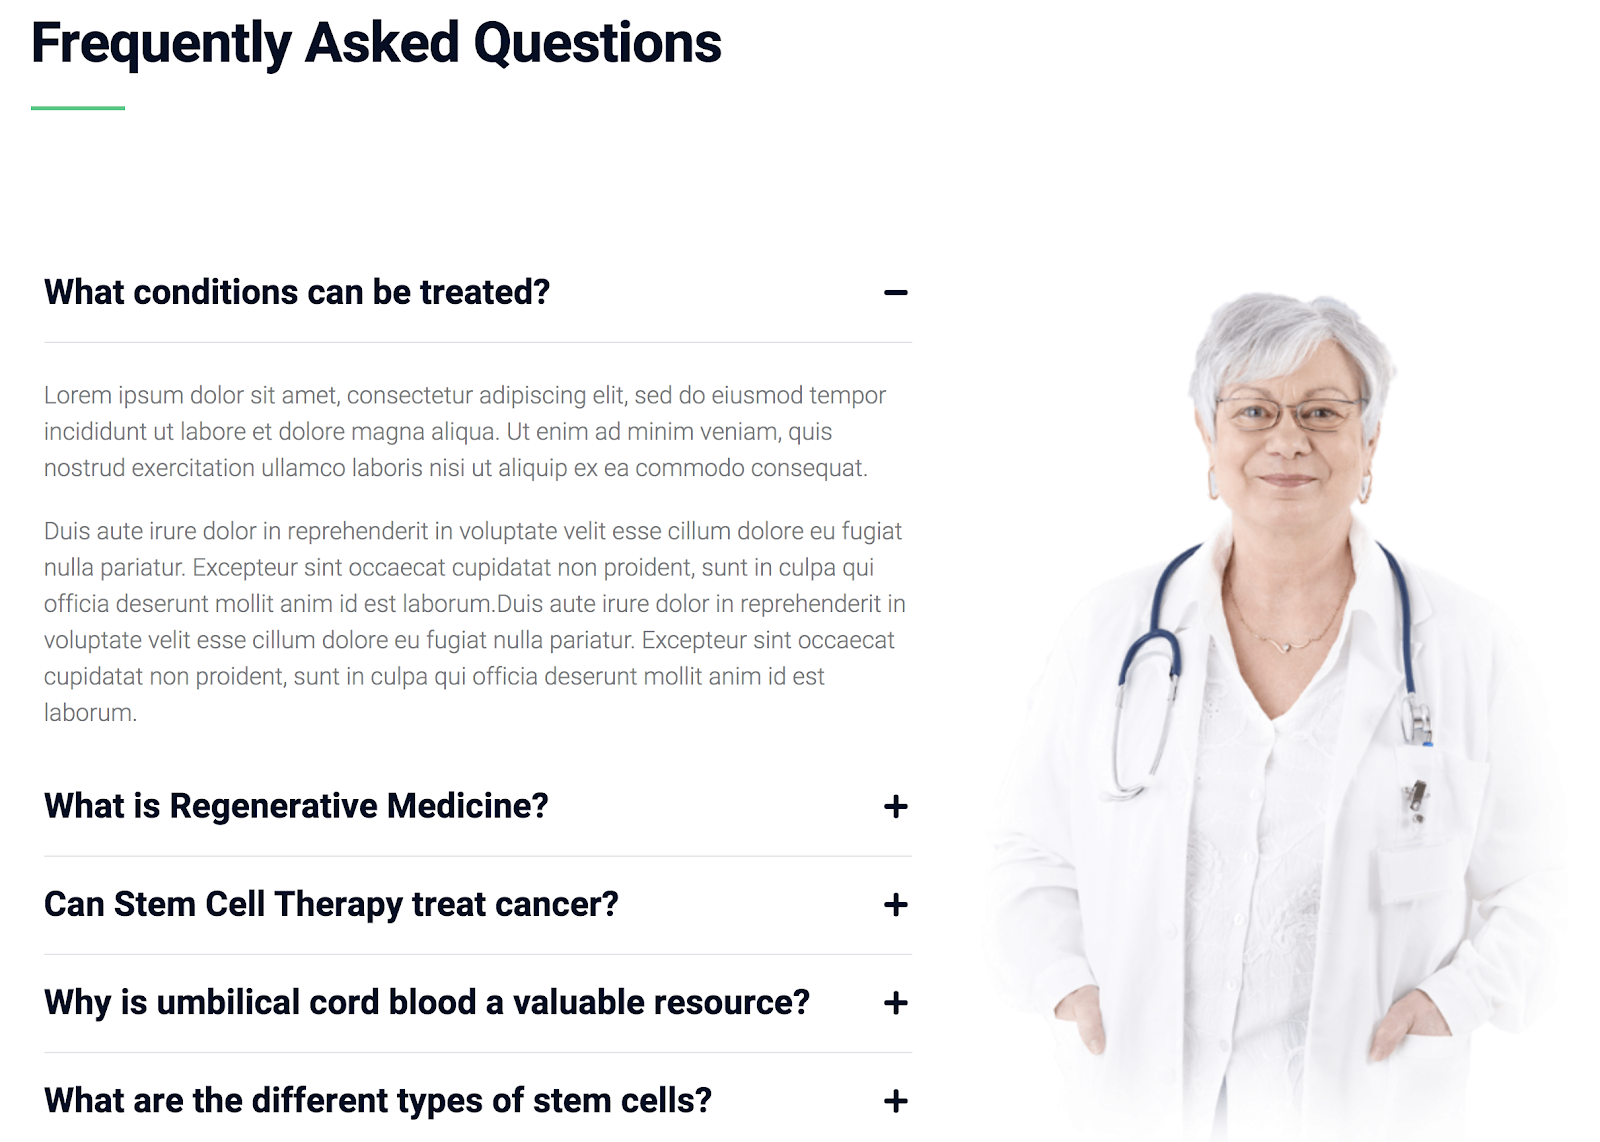 create a medical website faq